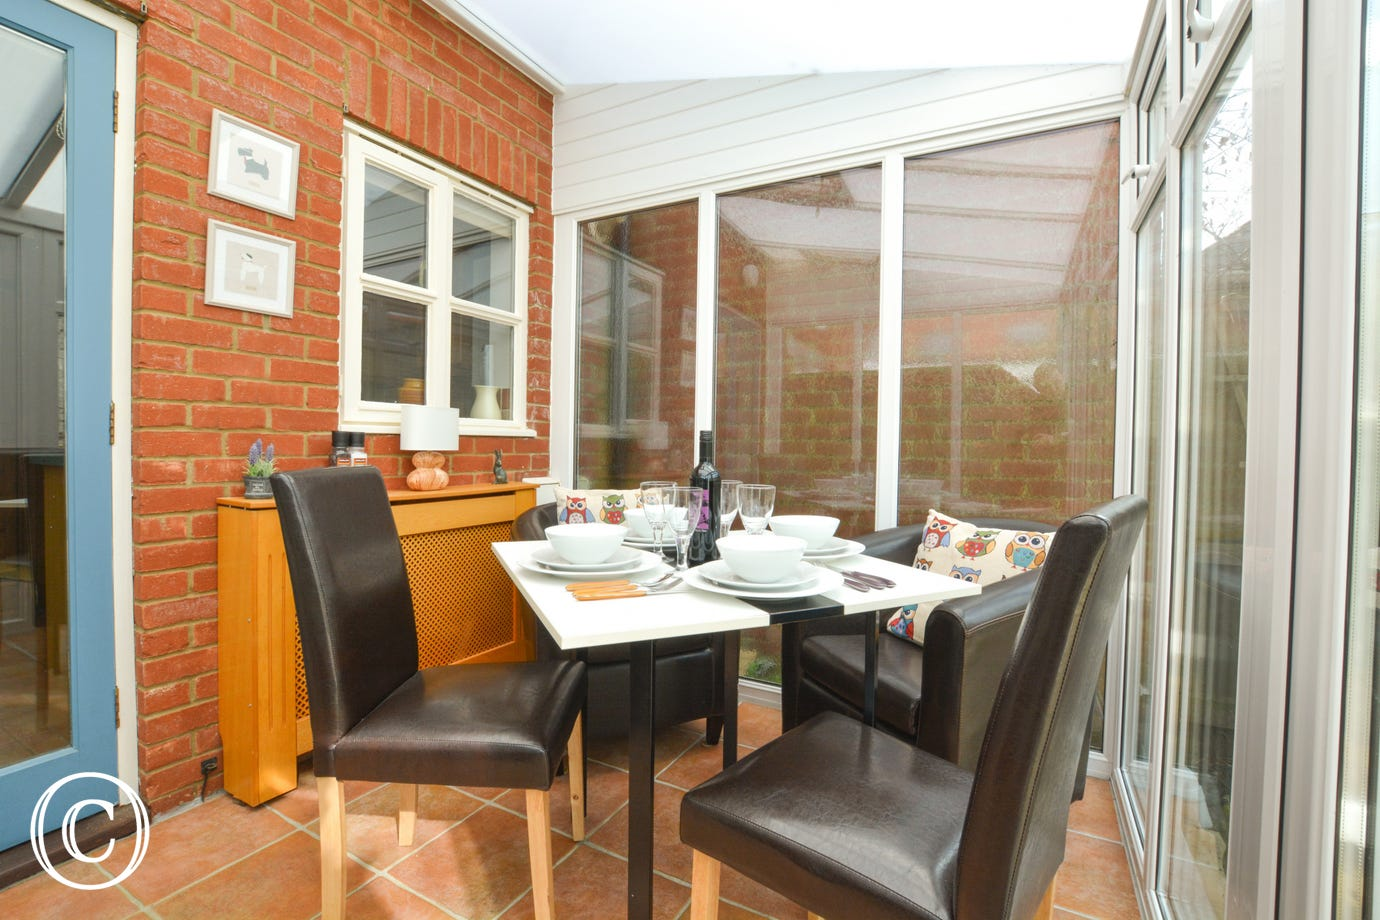 Dining Room/Conservatory with table and chairs